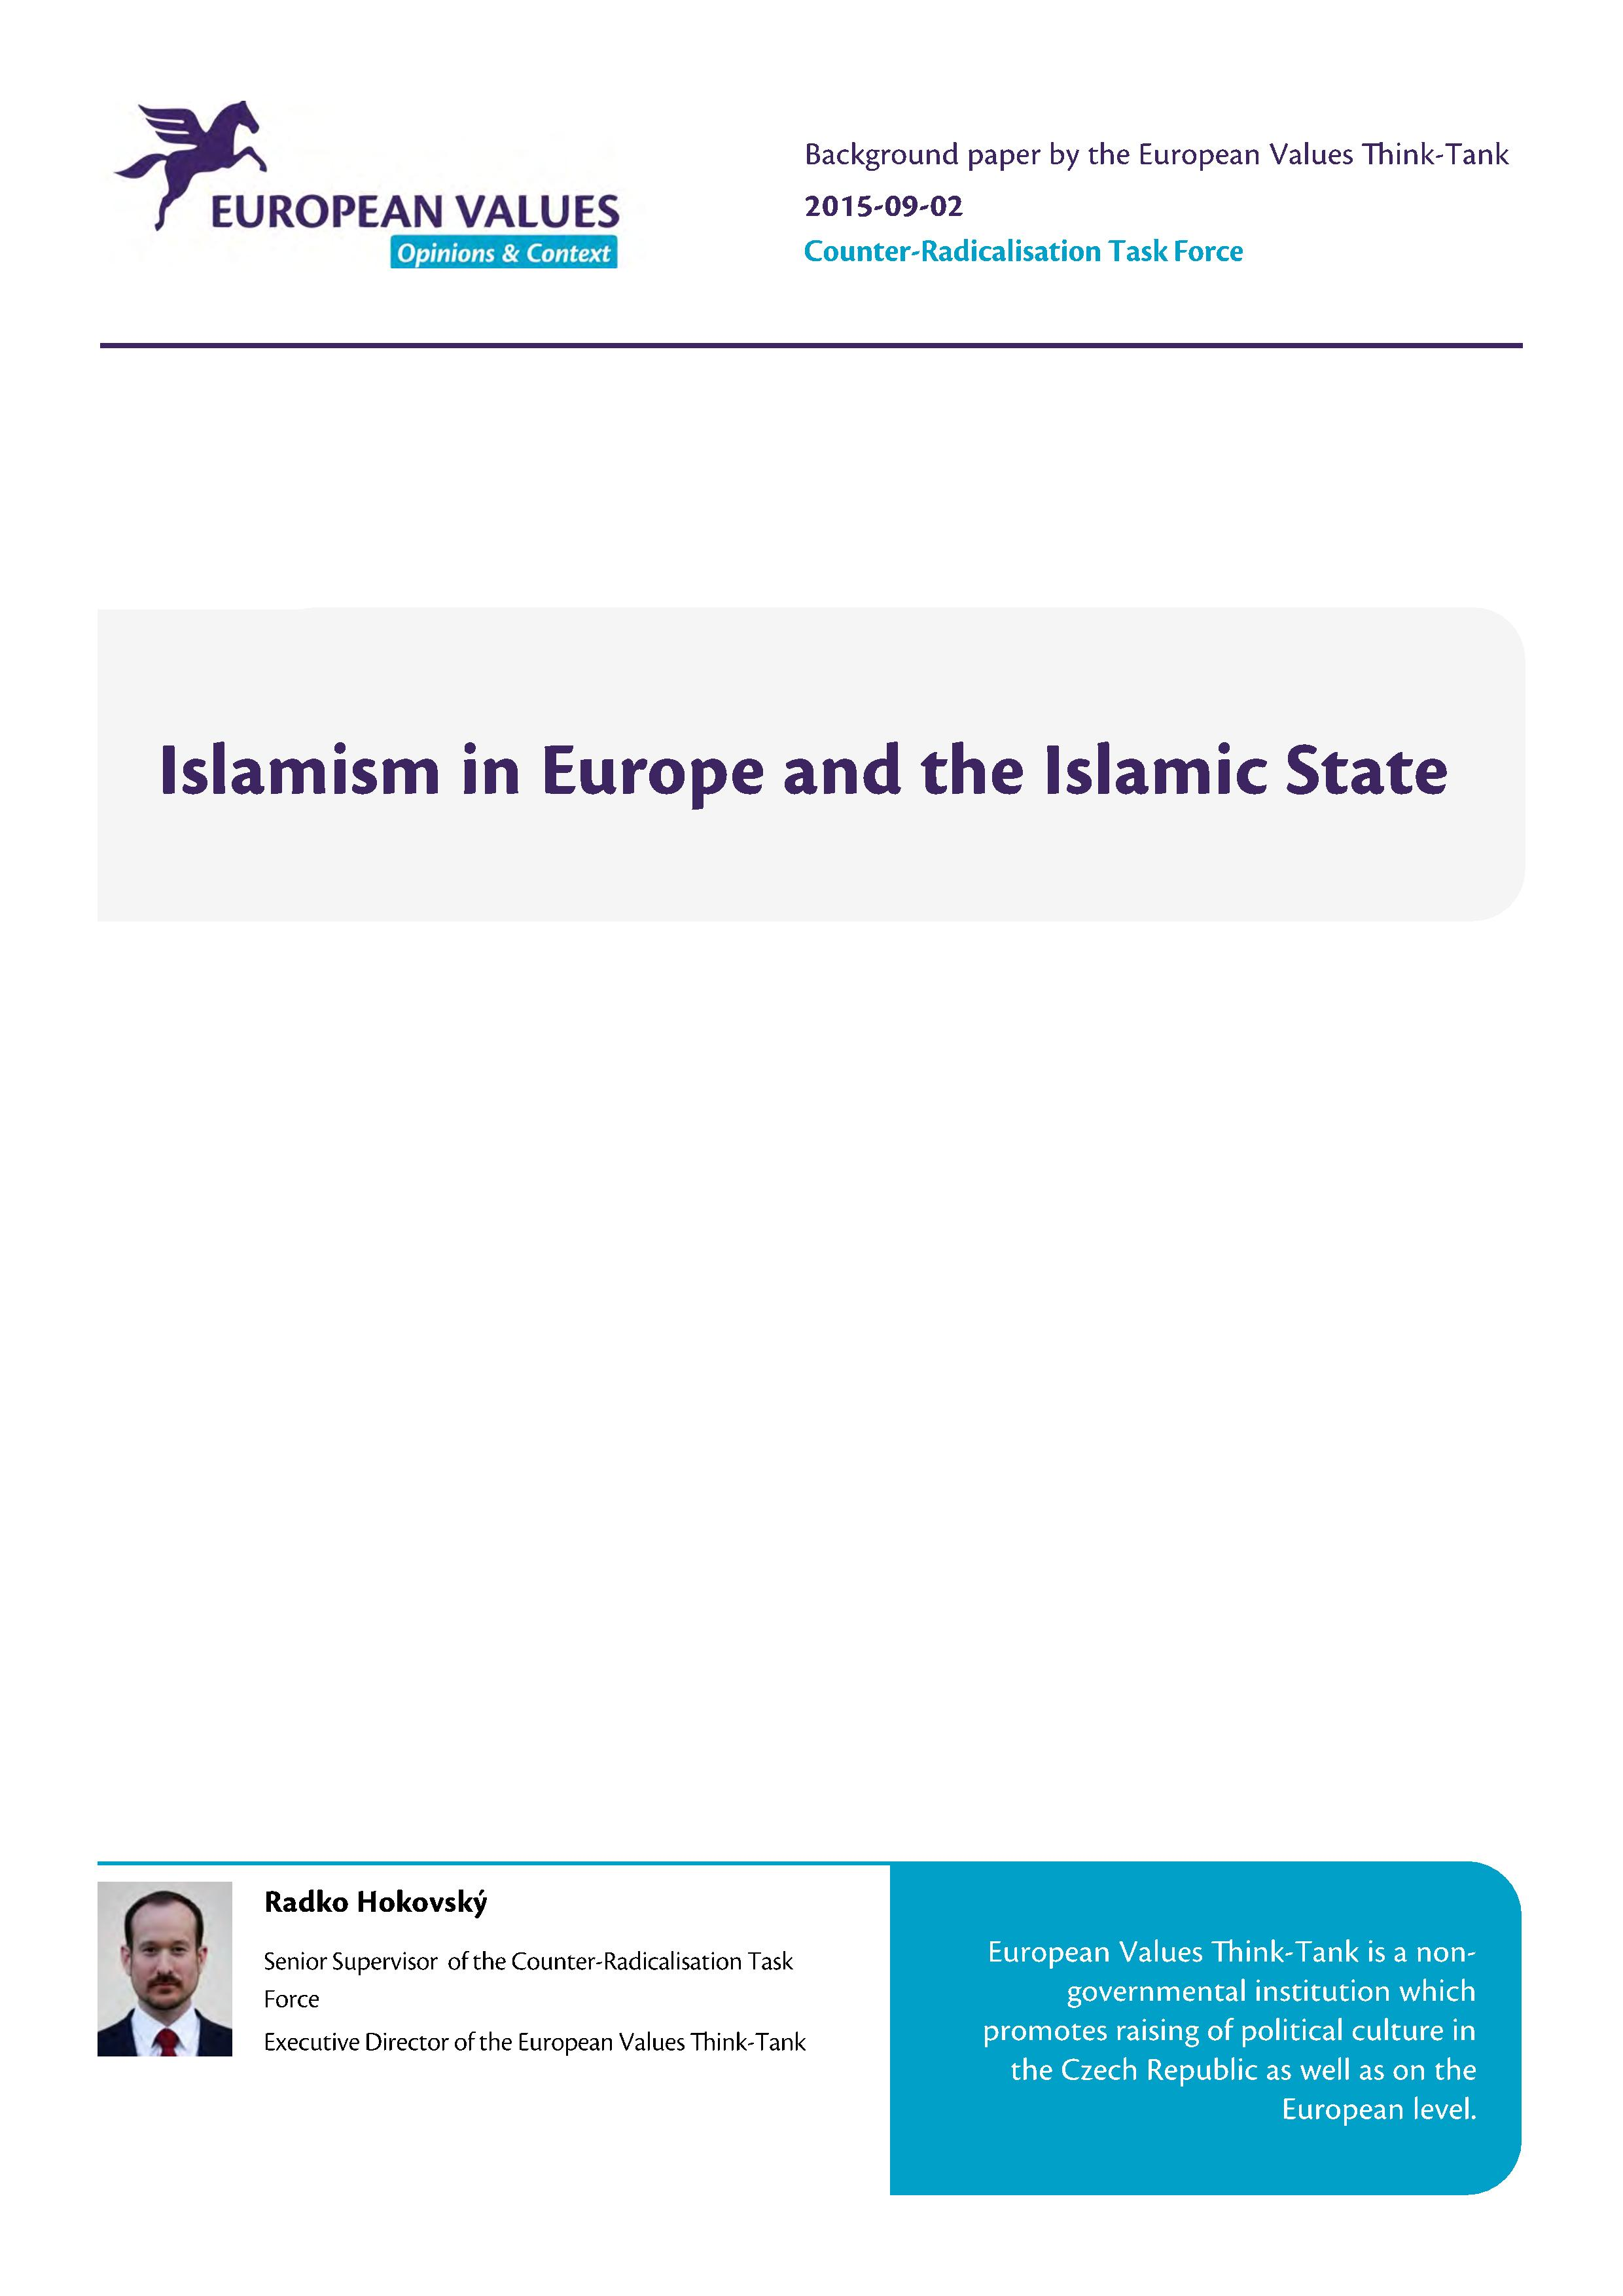 Islamism-in-Europe-and-the-Islamic-State-page-001